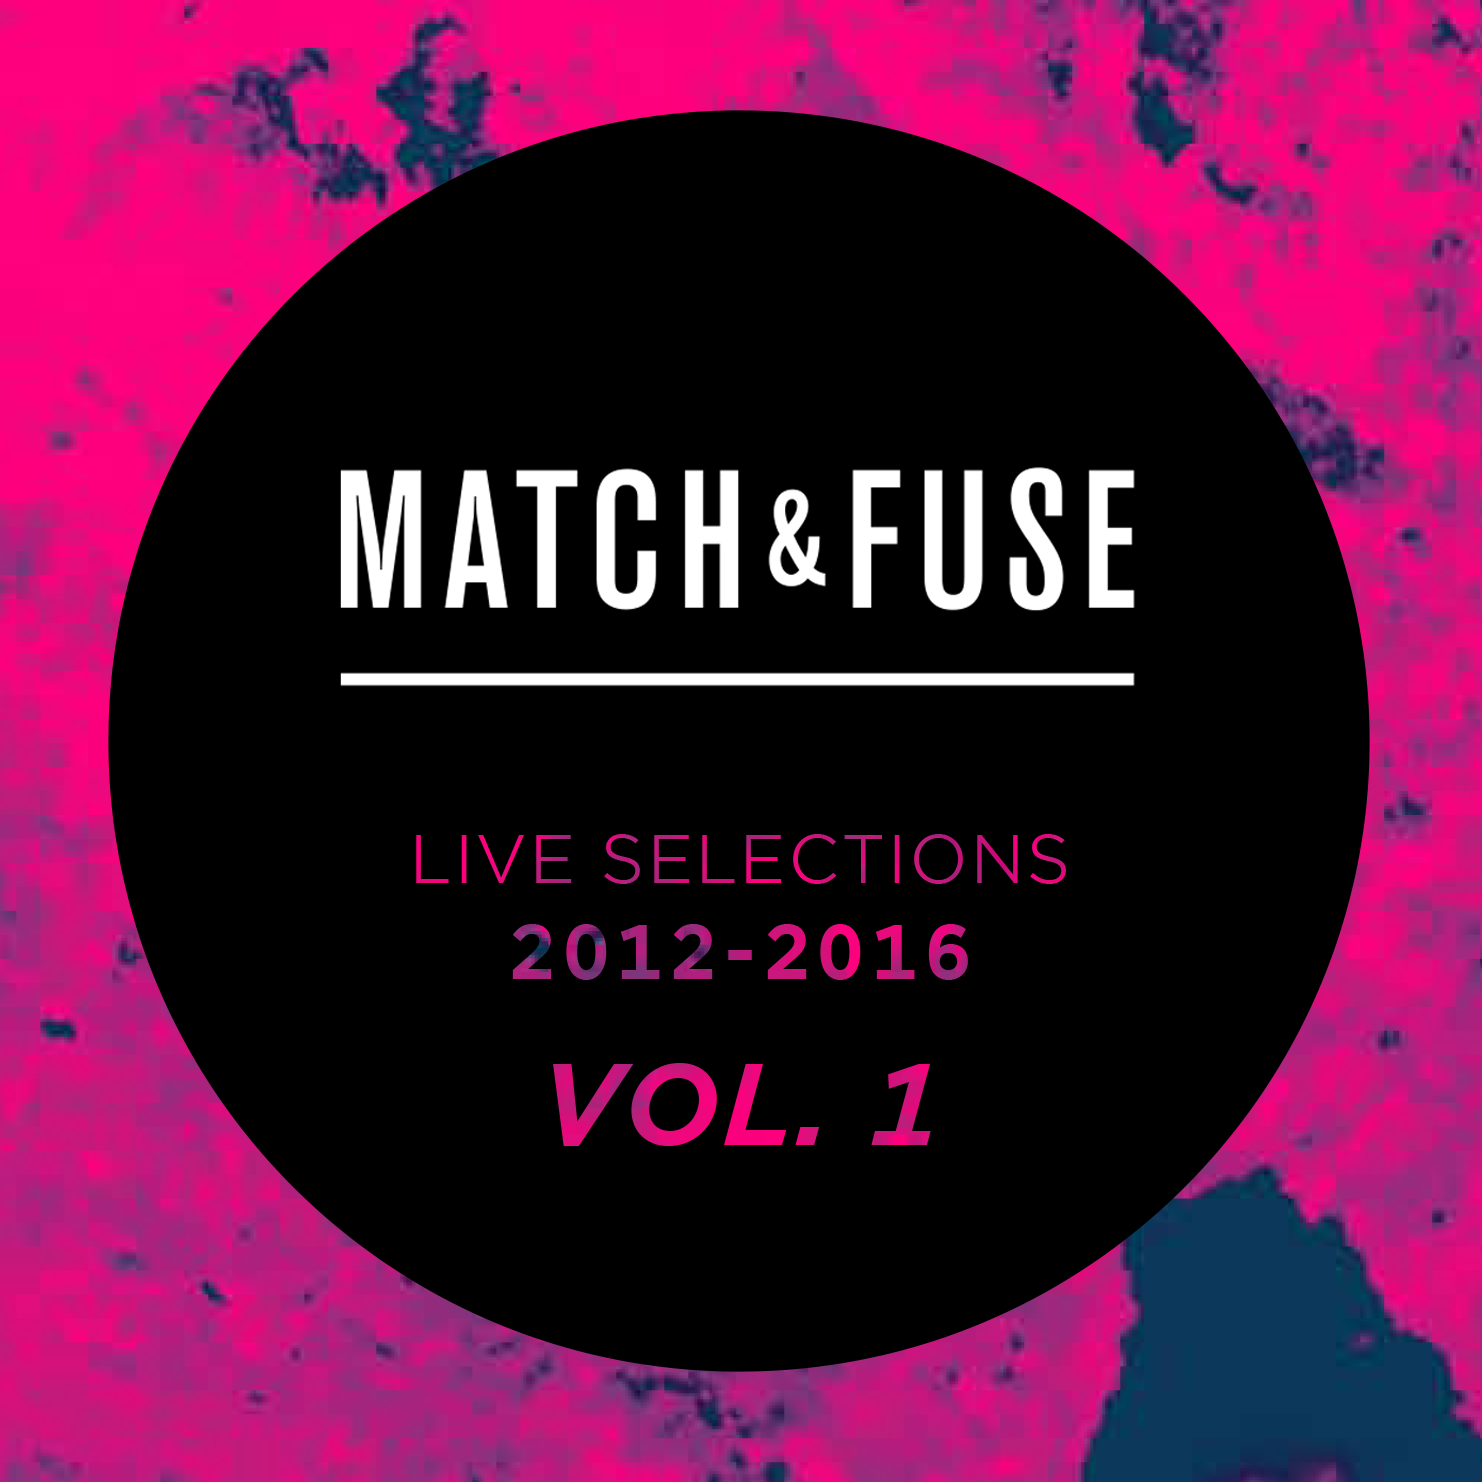 Match&Fuse Live Selections